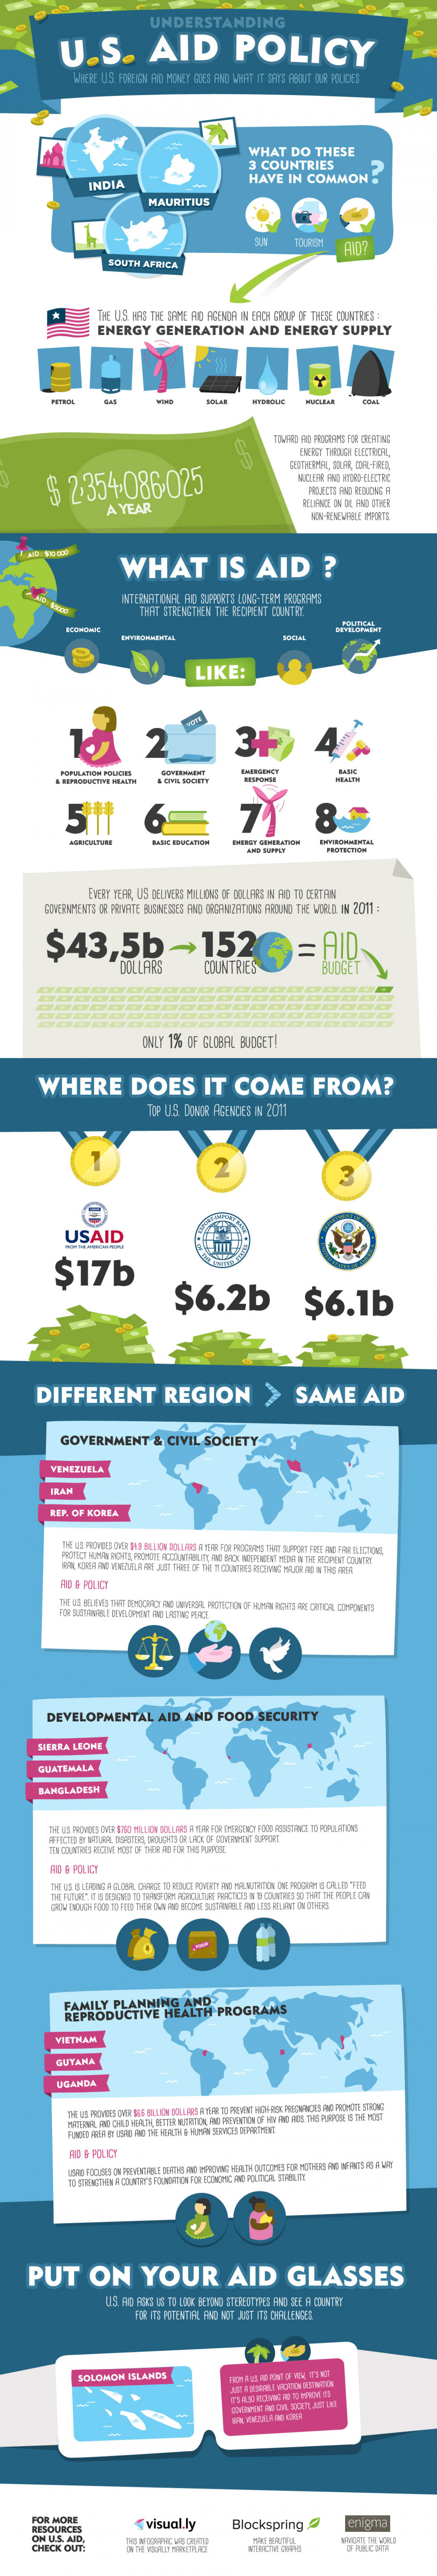 Understanding U.S. Aid Policy Infographic